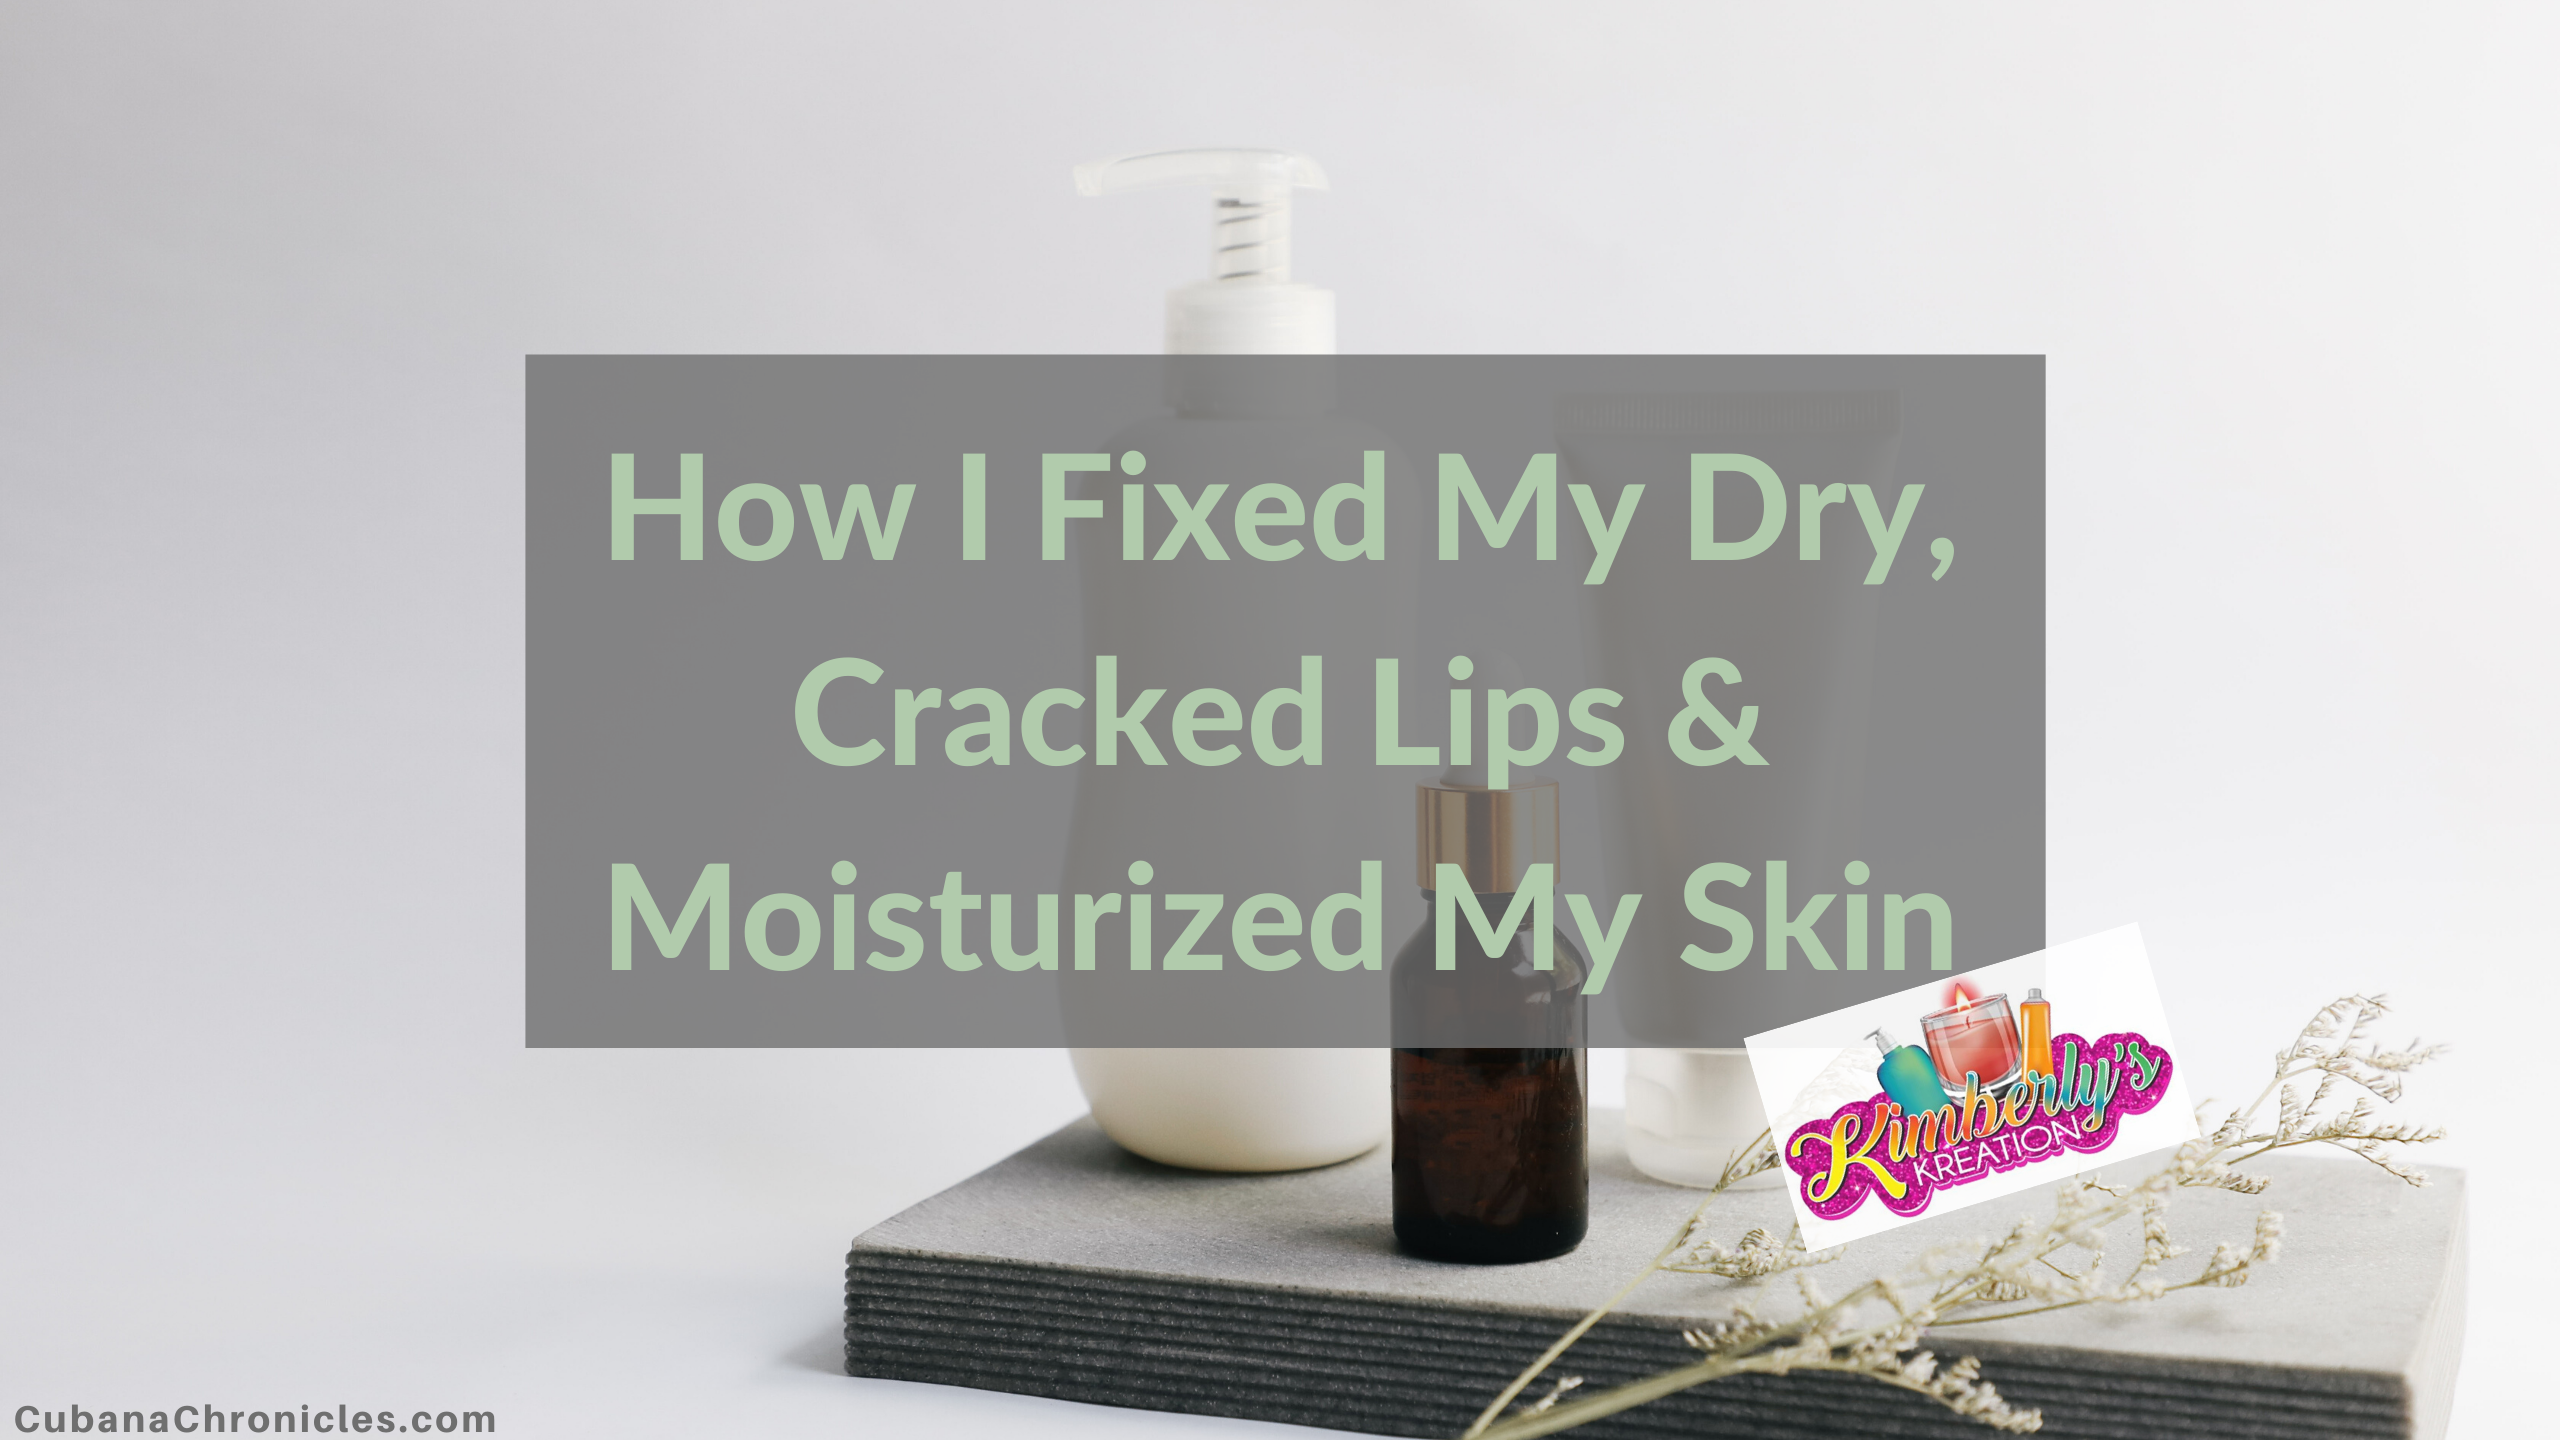 Life Changing Skin Care That Cured My Cracked Lips & Skin